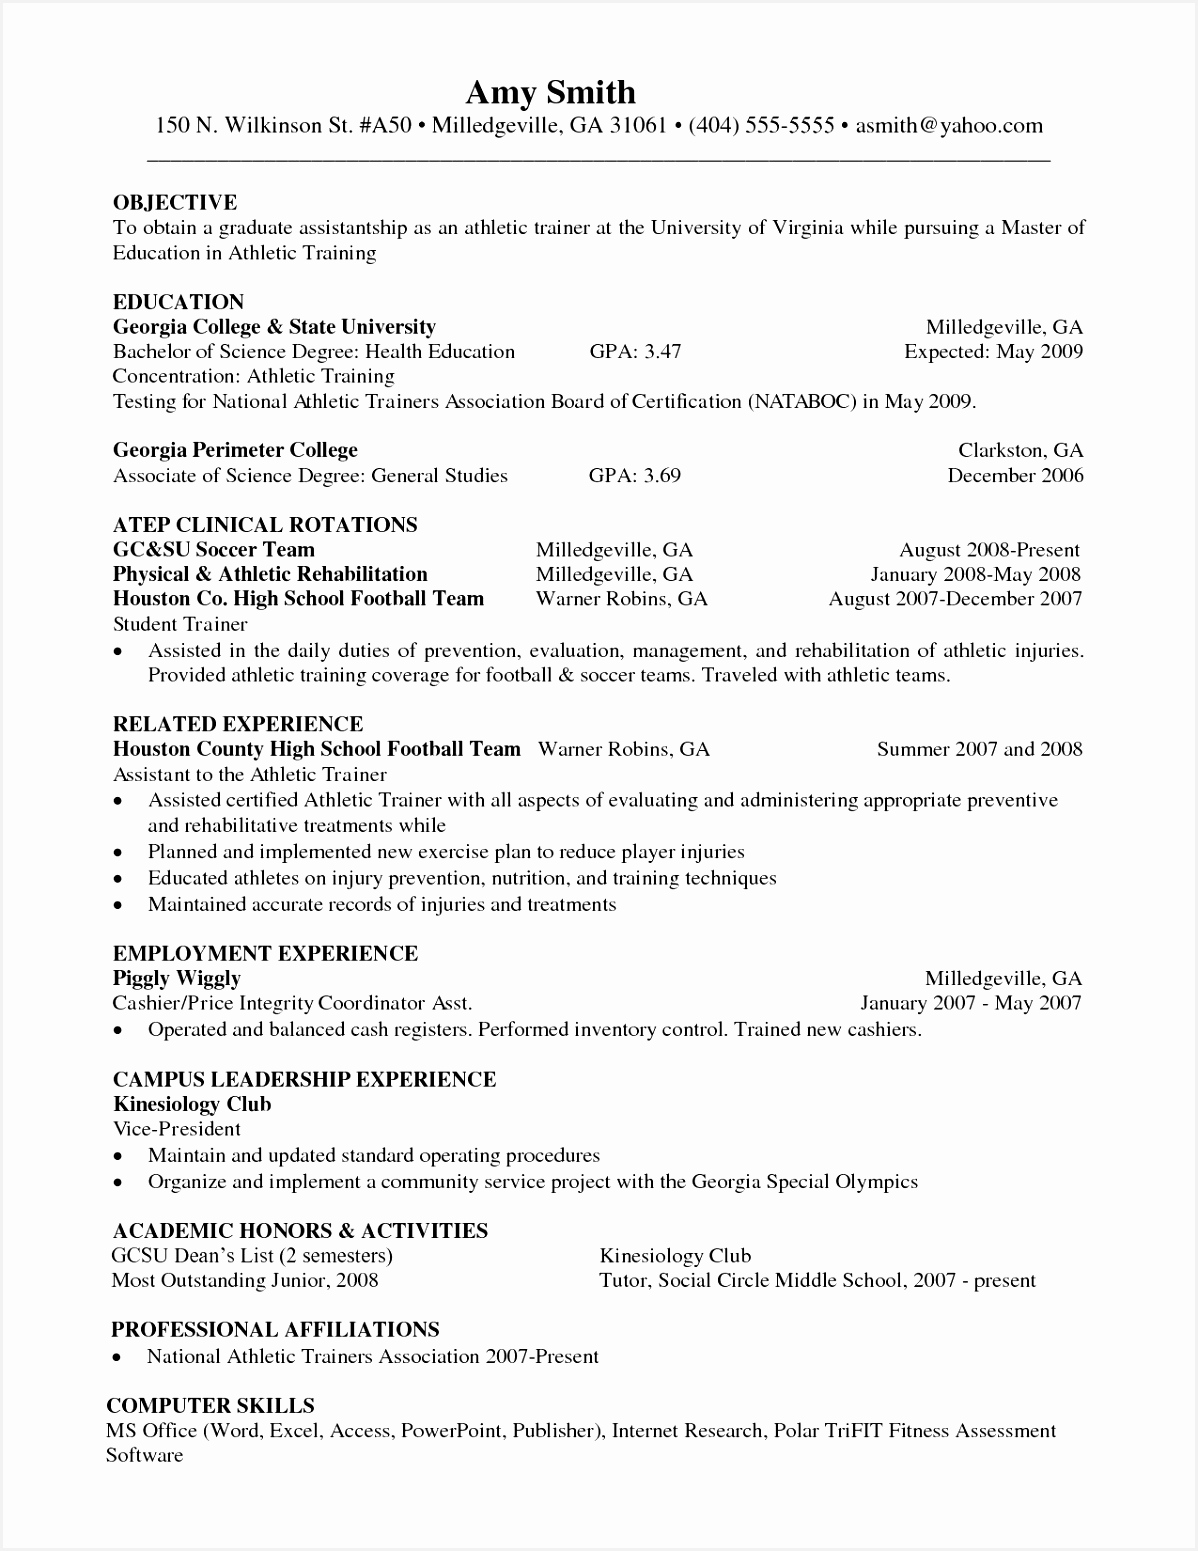 Resumes format for Freshers 3hian Lovely Resume format for Internship Engineering Elegant Luxury Grapher Of Resumes format for Freshers Yshjb Awesome New Rn Resume format Lovely New Nurse Resume Awesome Nurse Resume 0d